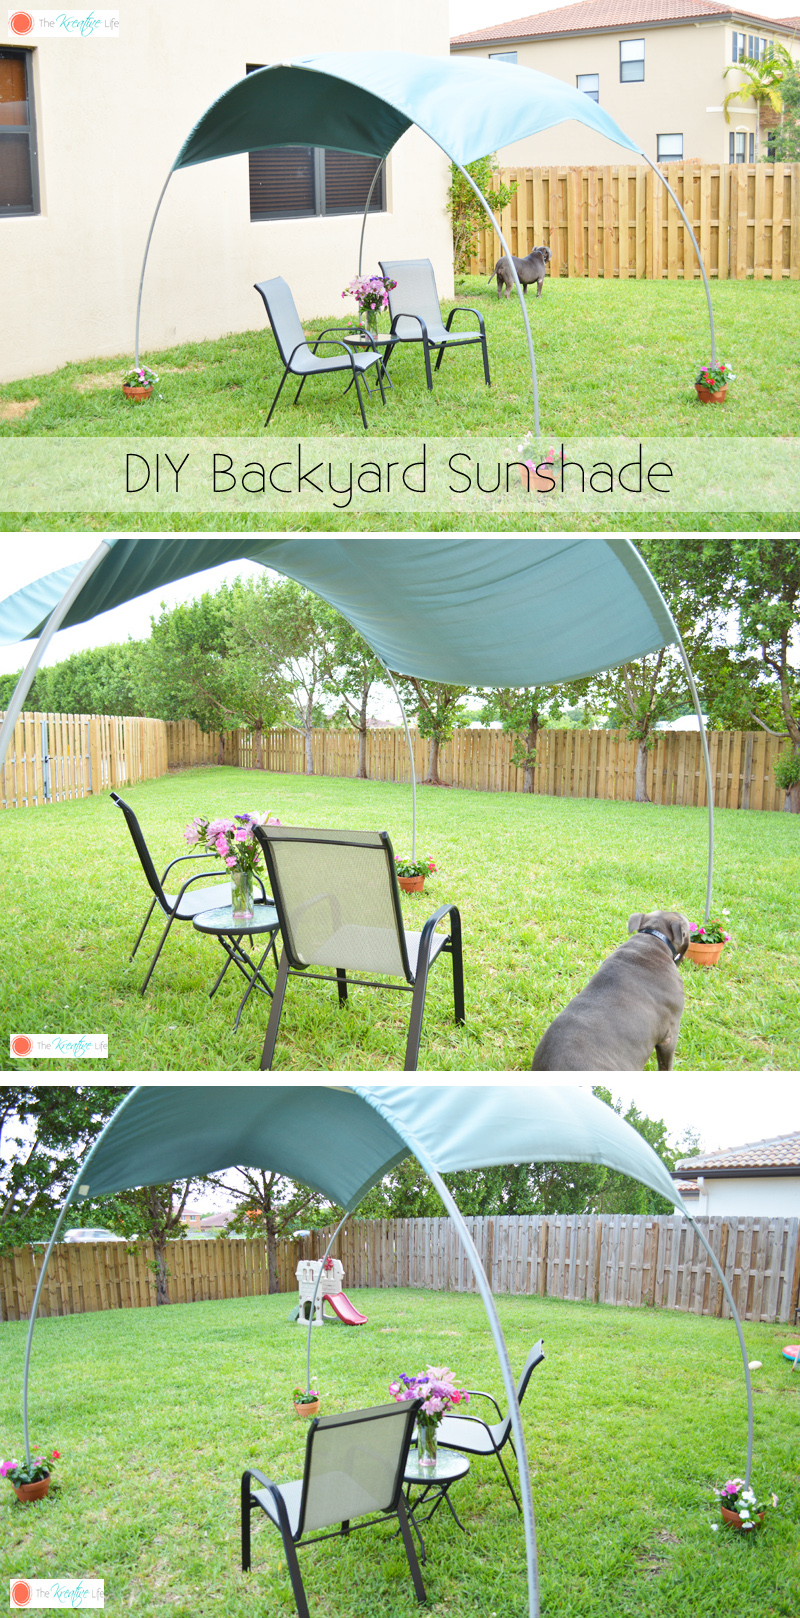 DIY PVC Canopy For Backyard Shade The Kreative Life